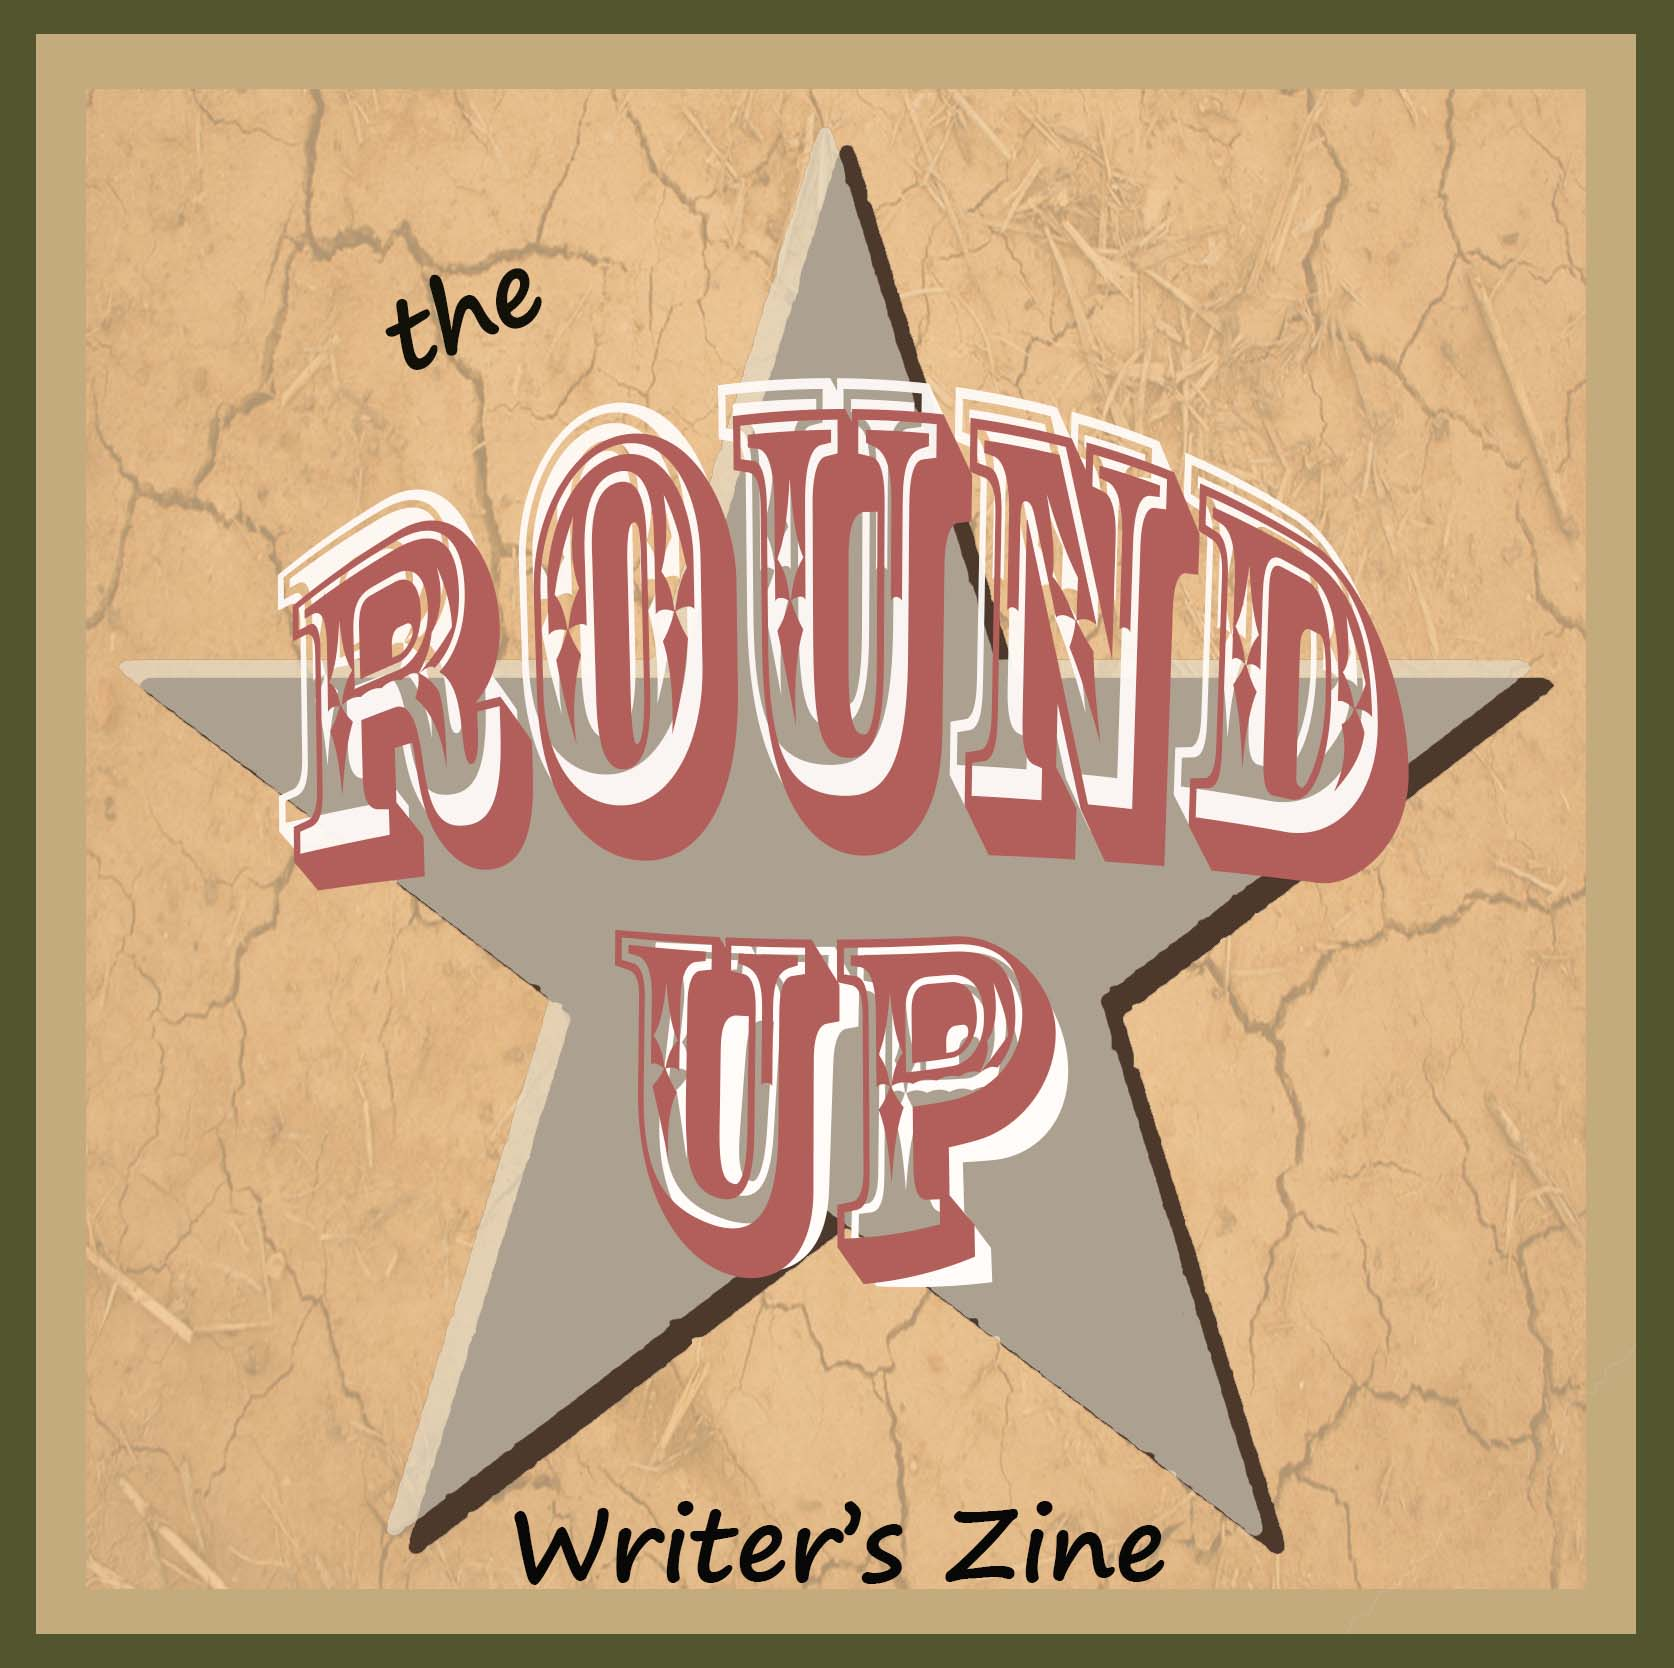 Call for Submissions: The Round Up Writer's Zine